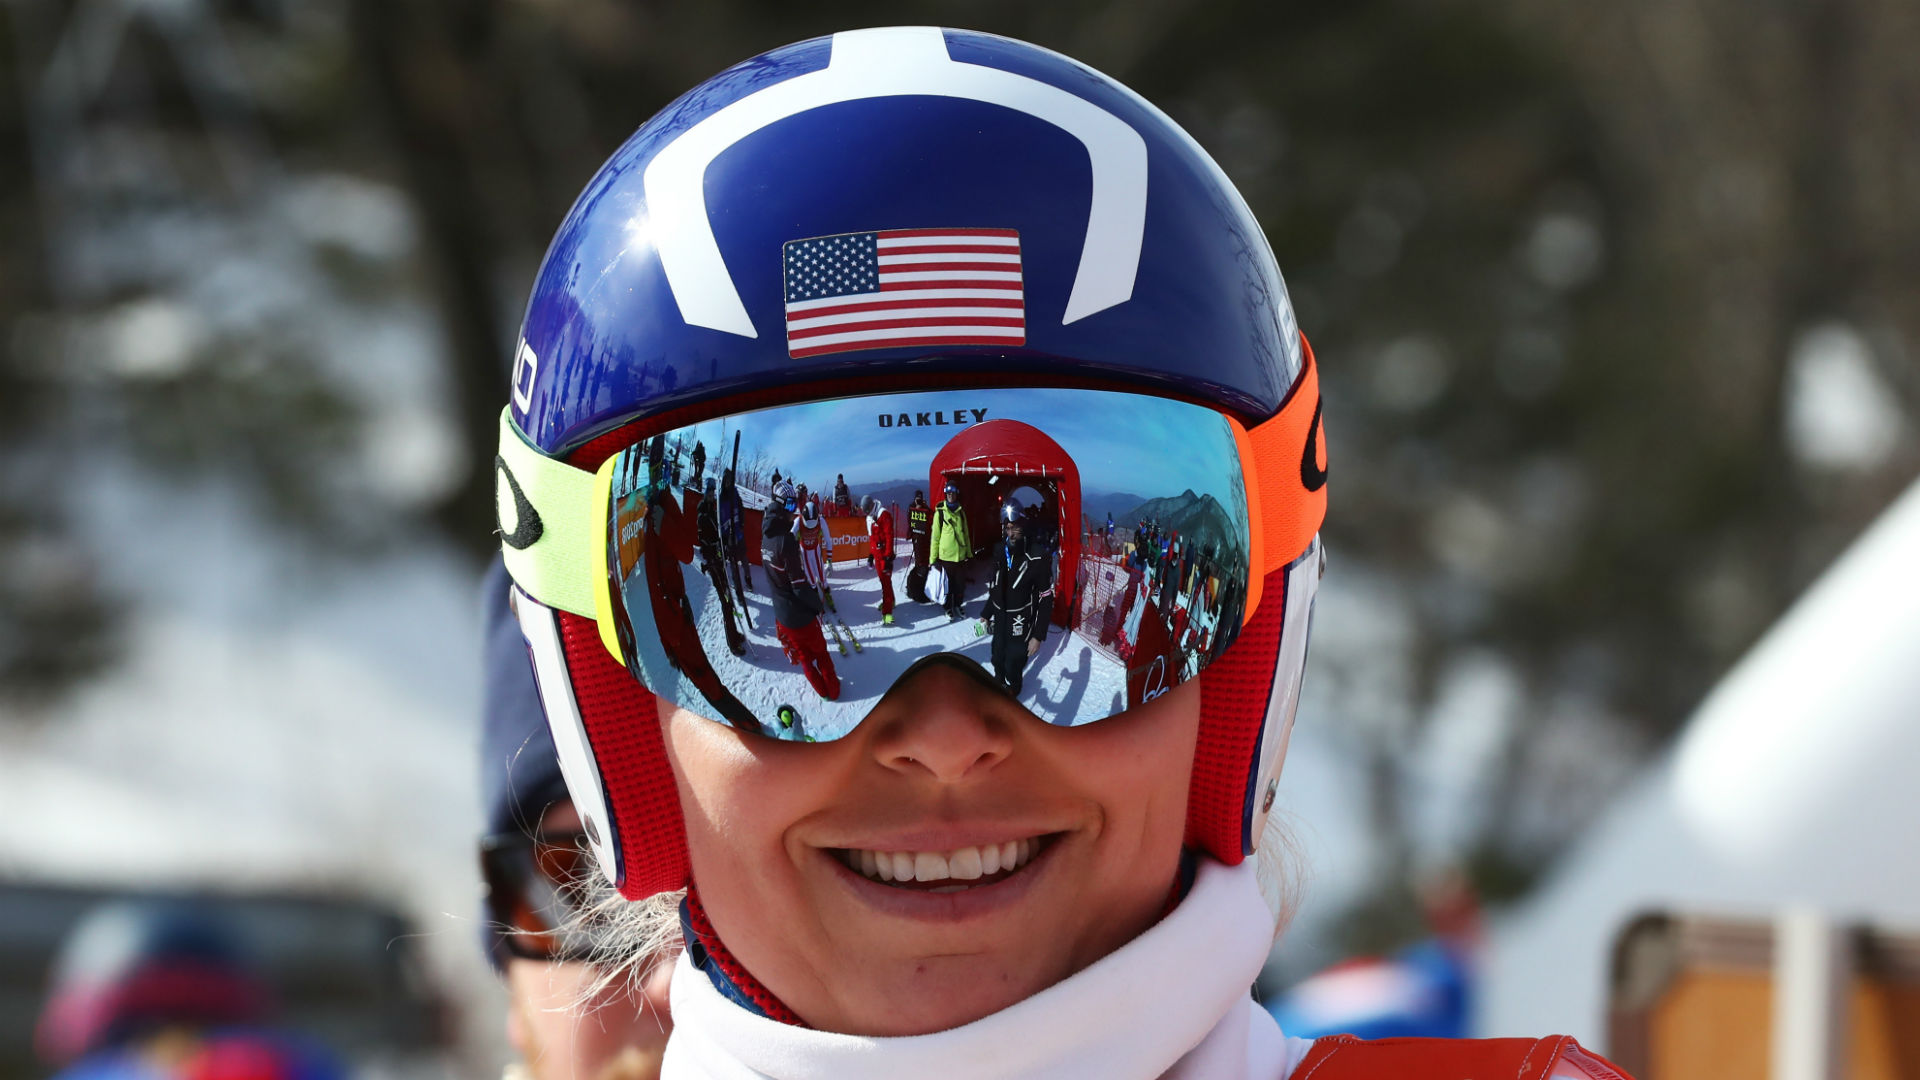 Lindsey Vonn pays touching tribute to grandfather in South Korea